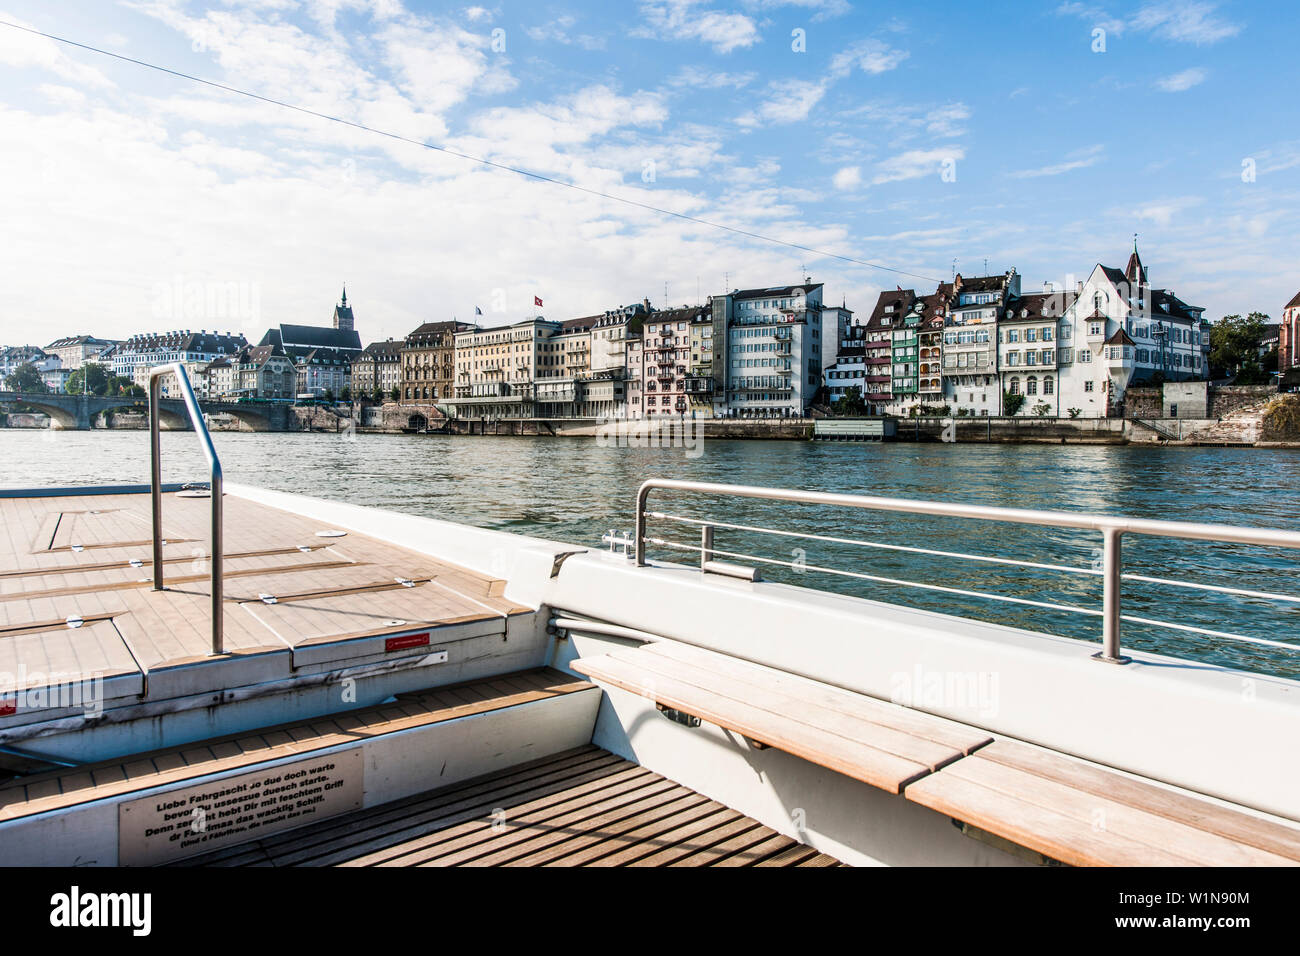 View from a ferry to Rhine riverbank, Basel, Canton of Basel-Stadt, Switzerland Stock Photo